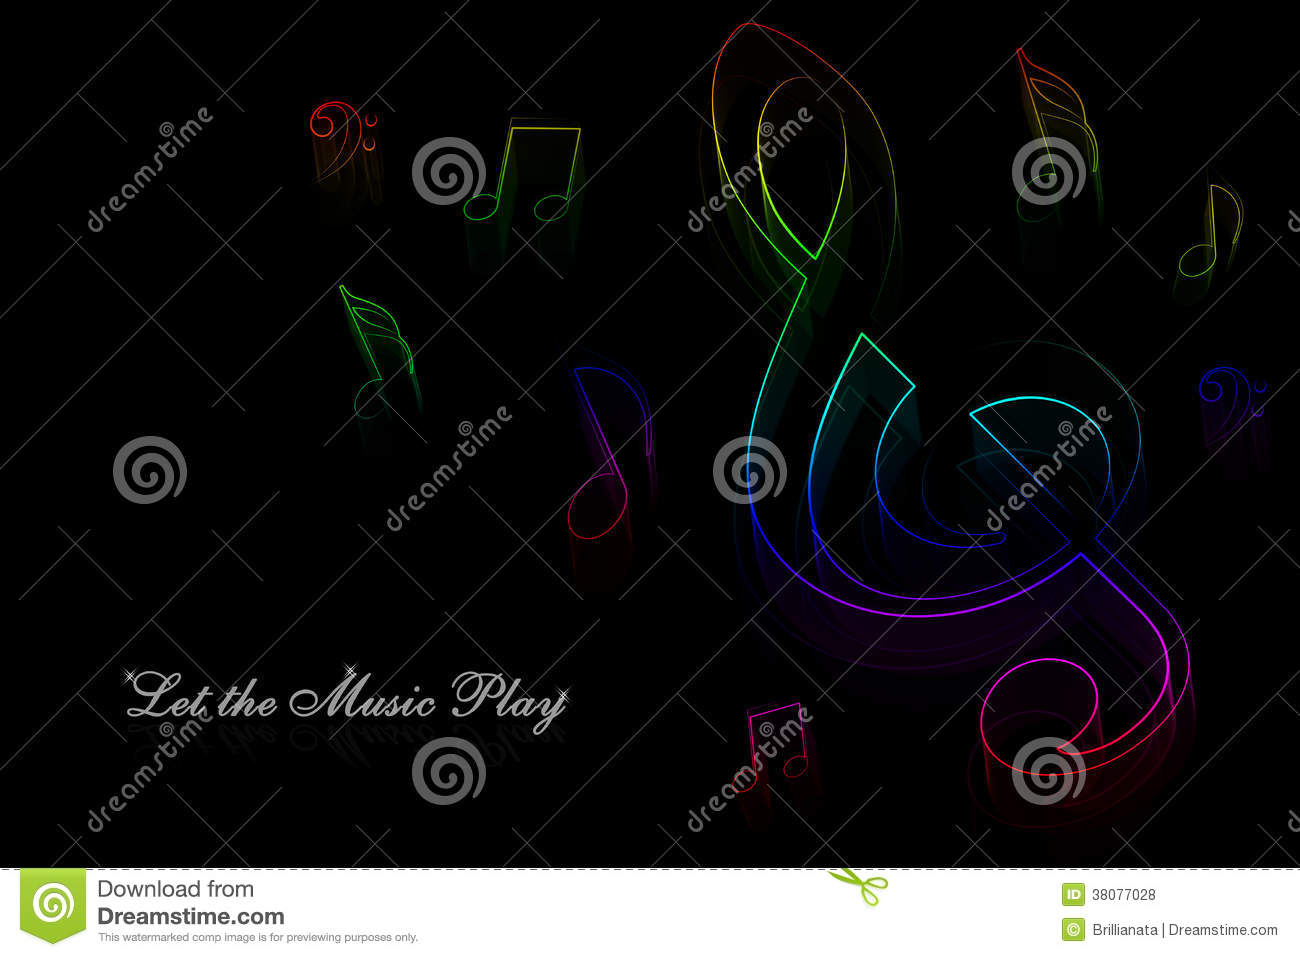 Neon Music Notes Wallpaper: Neon Music Notes Royalty Free Stock Photos